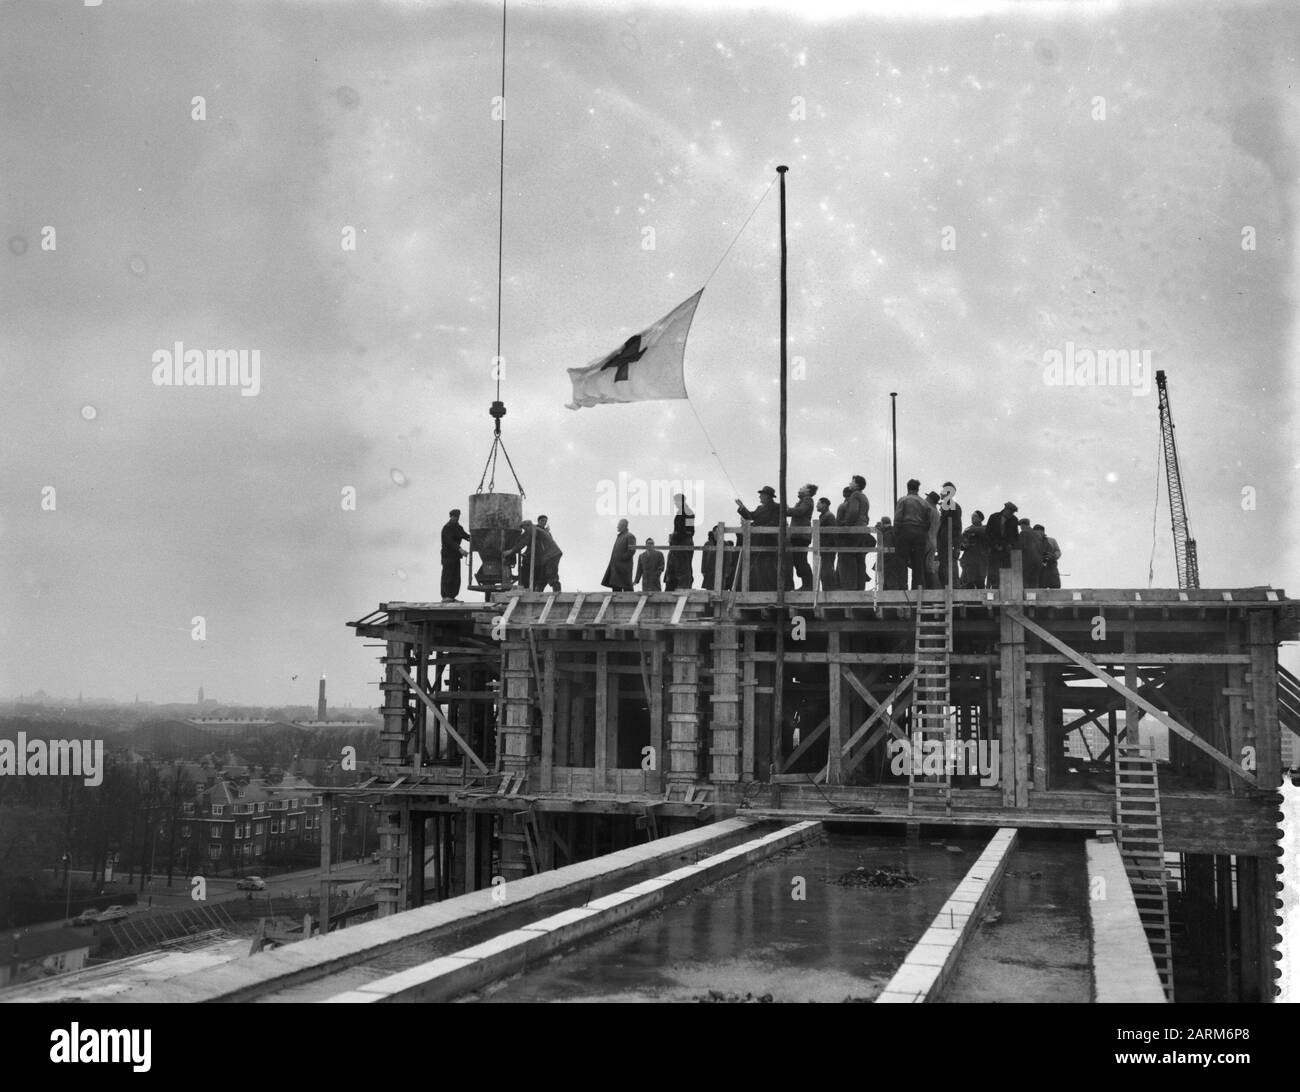 Hoisting Of The Flag At The Roode Kruisziekenhuis In The Hague